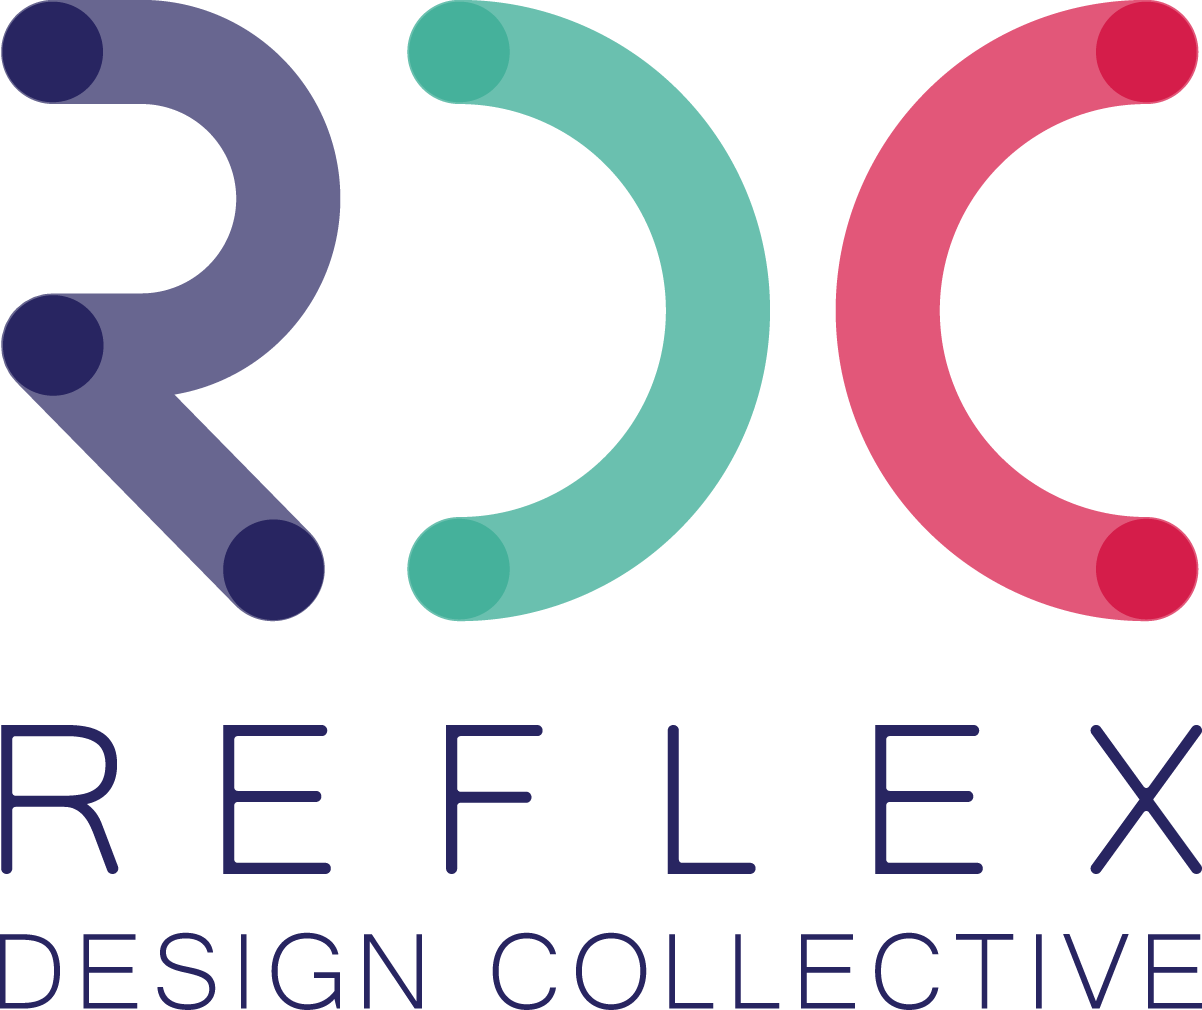 Reflex Design Collective